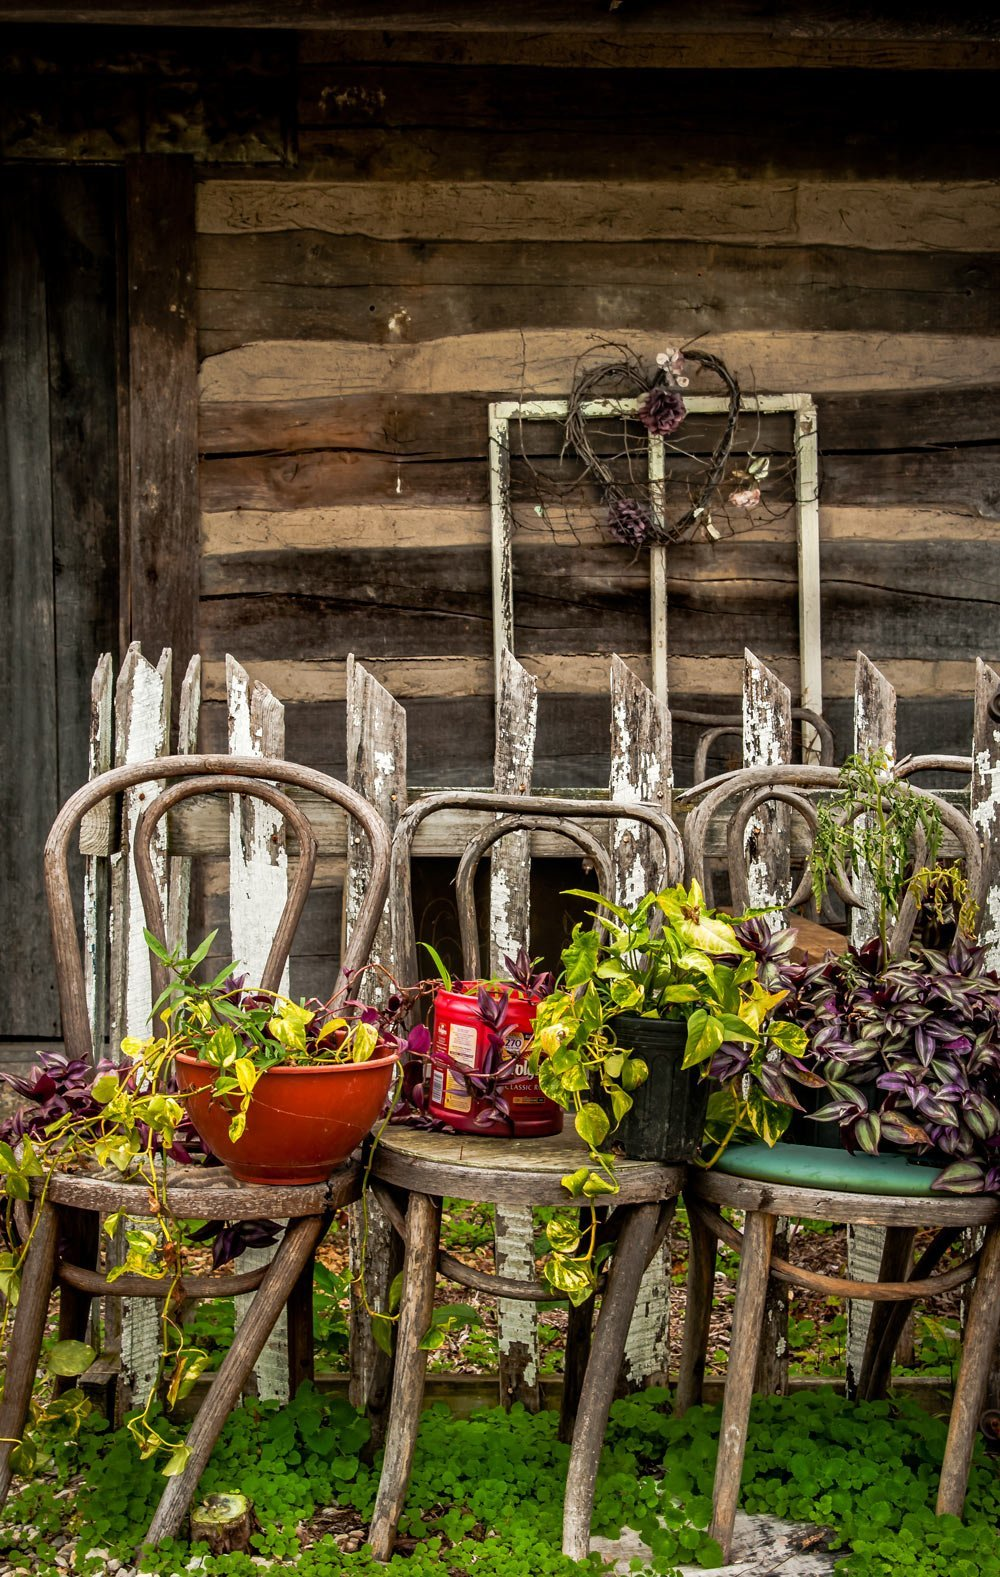 Chairs and potted vines